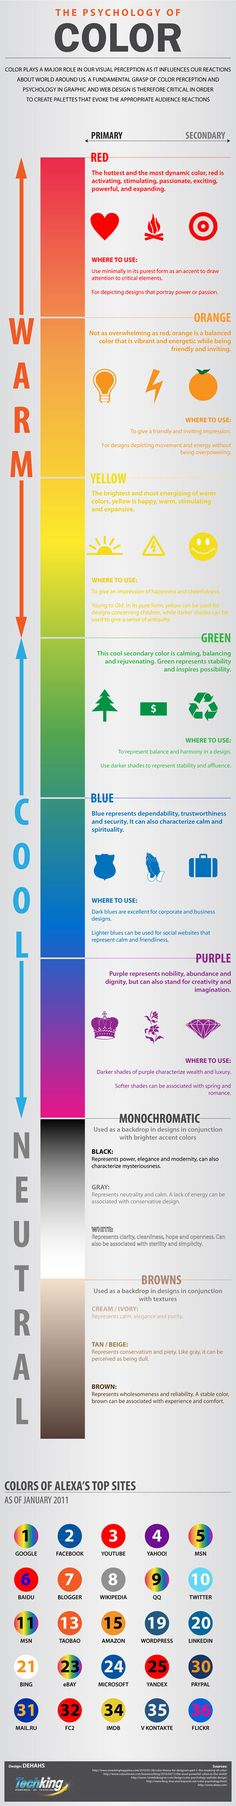 THE PSYCHOLOGY OF COLOR – MUST SEE FOR WEB DESIGNERS